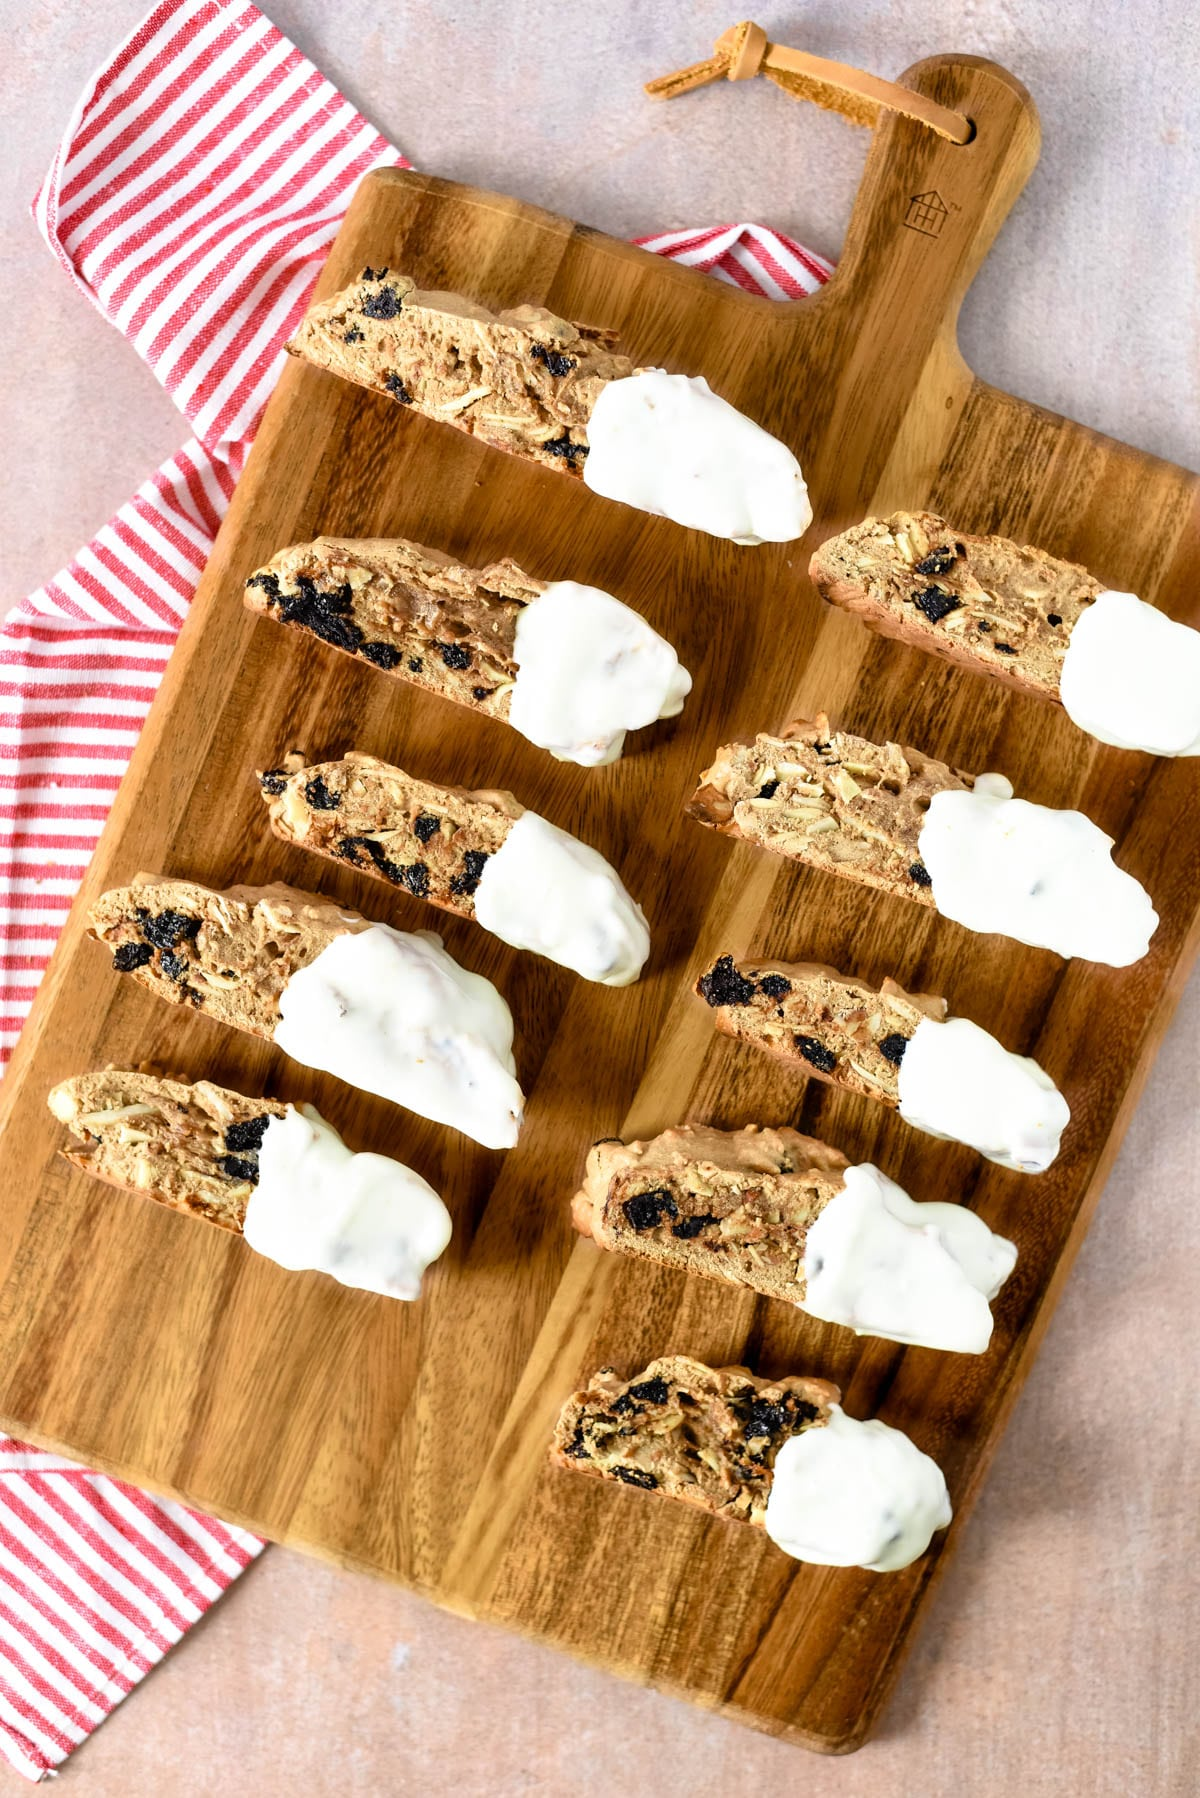 cherry almond biscotti lined on wooden board